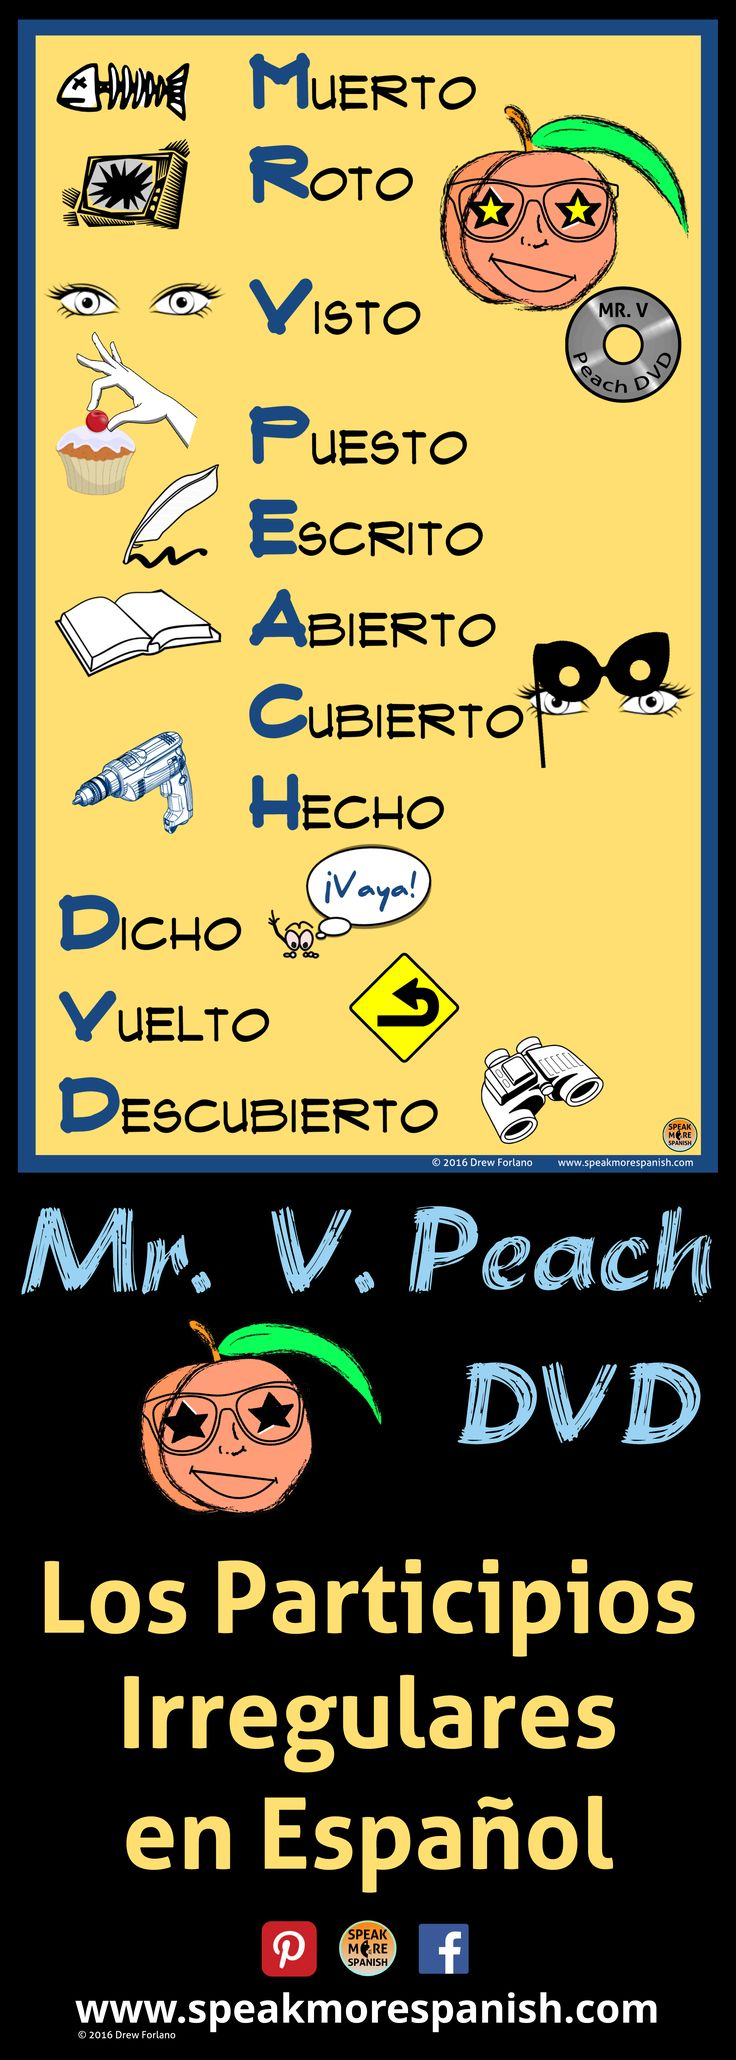 Póster gratis en español. Free Spanish Posters and other activities for teachers at www.speakmorespanish.com.Learn the irregular past participles with this fun mnemonic: MR. V. Peach DVD